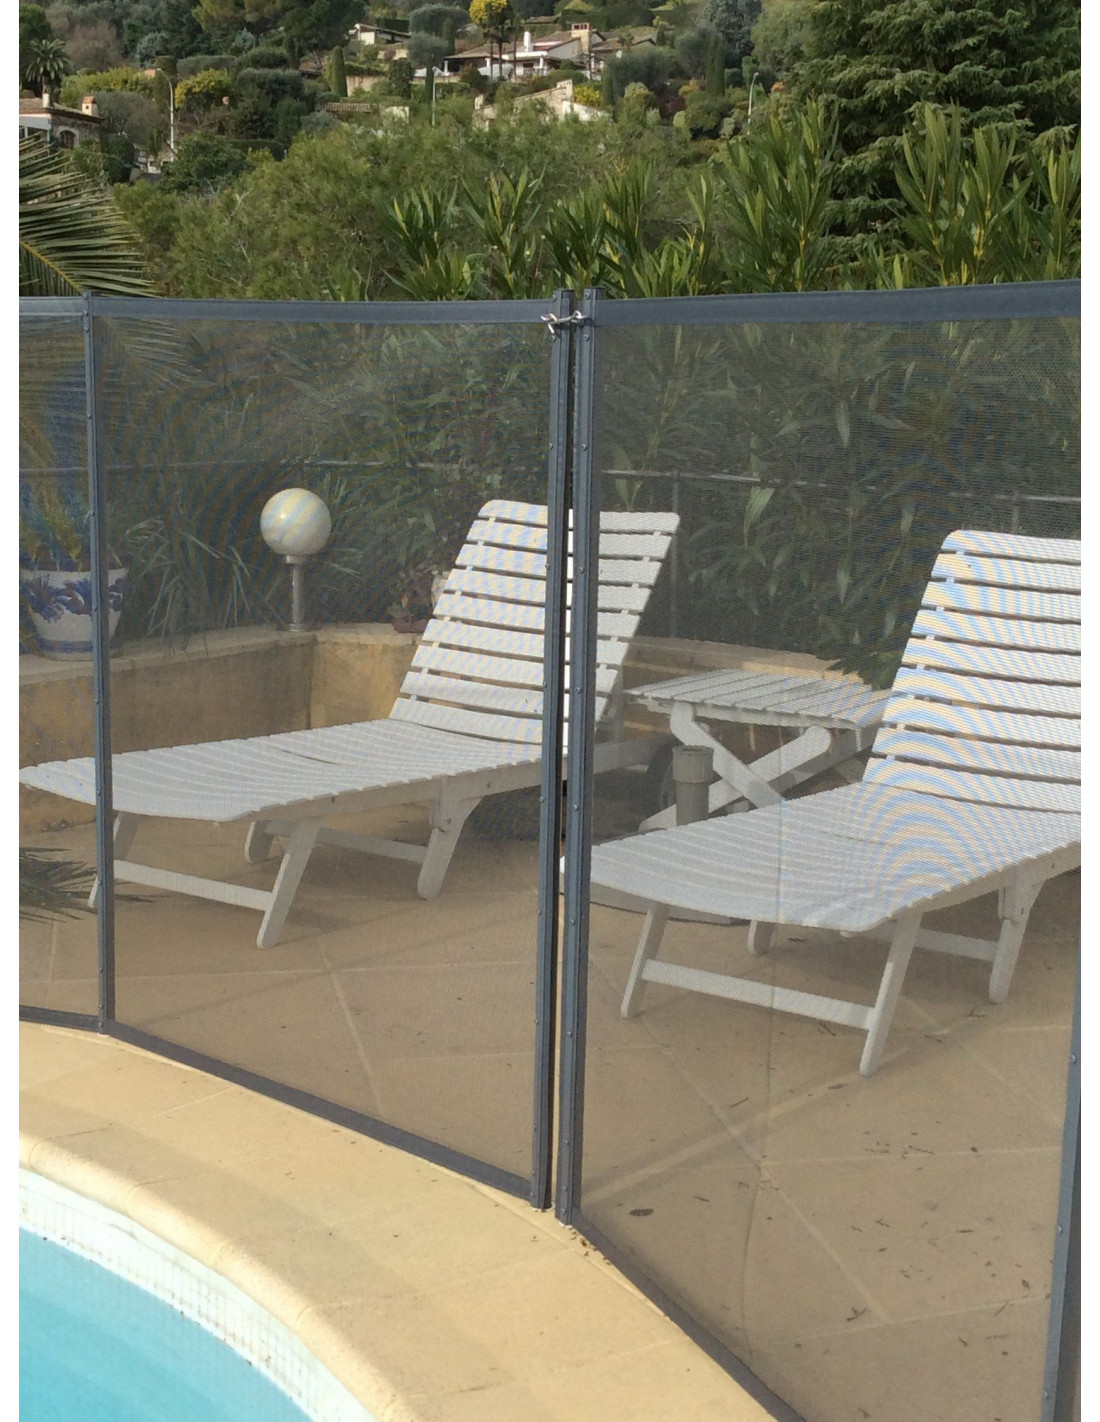 Barri re protection piscine beethoven grise avec piquets gris for Barrieres piscine beethoven